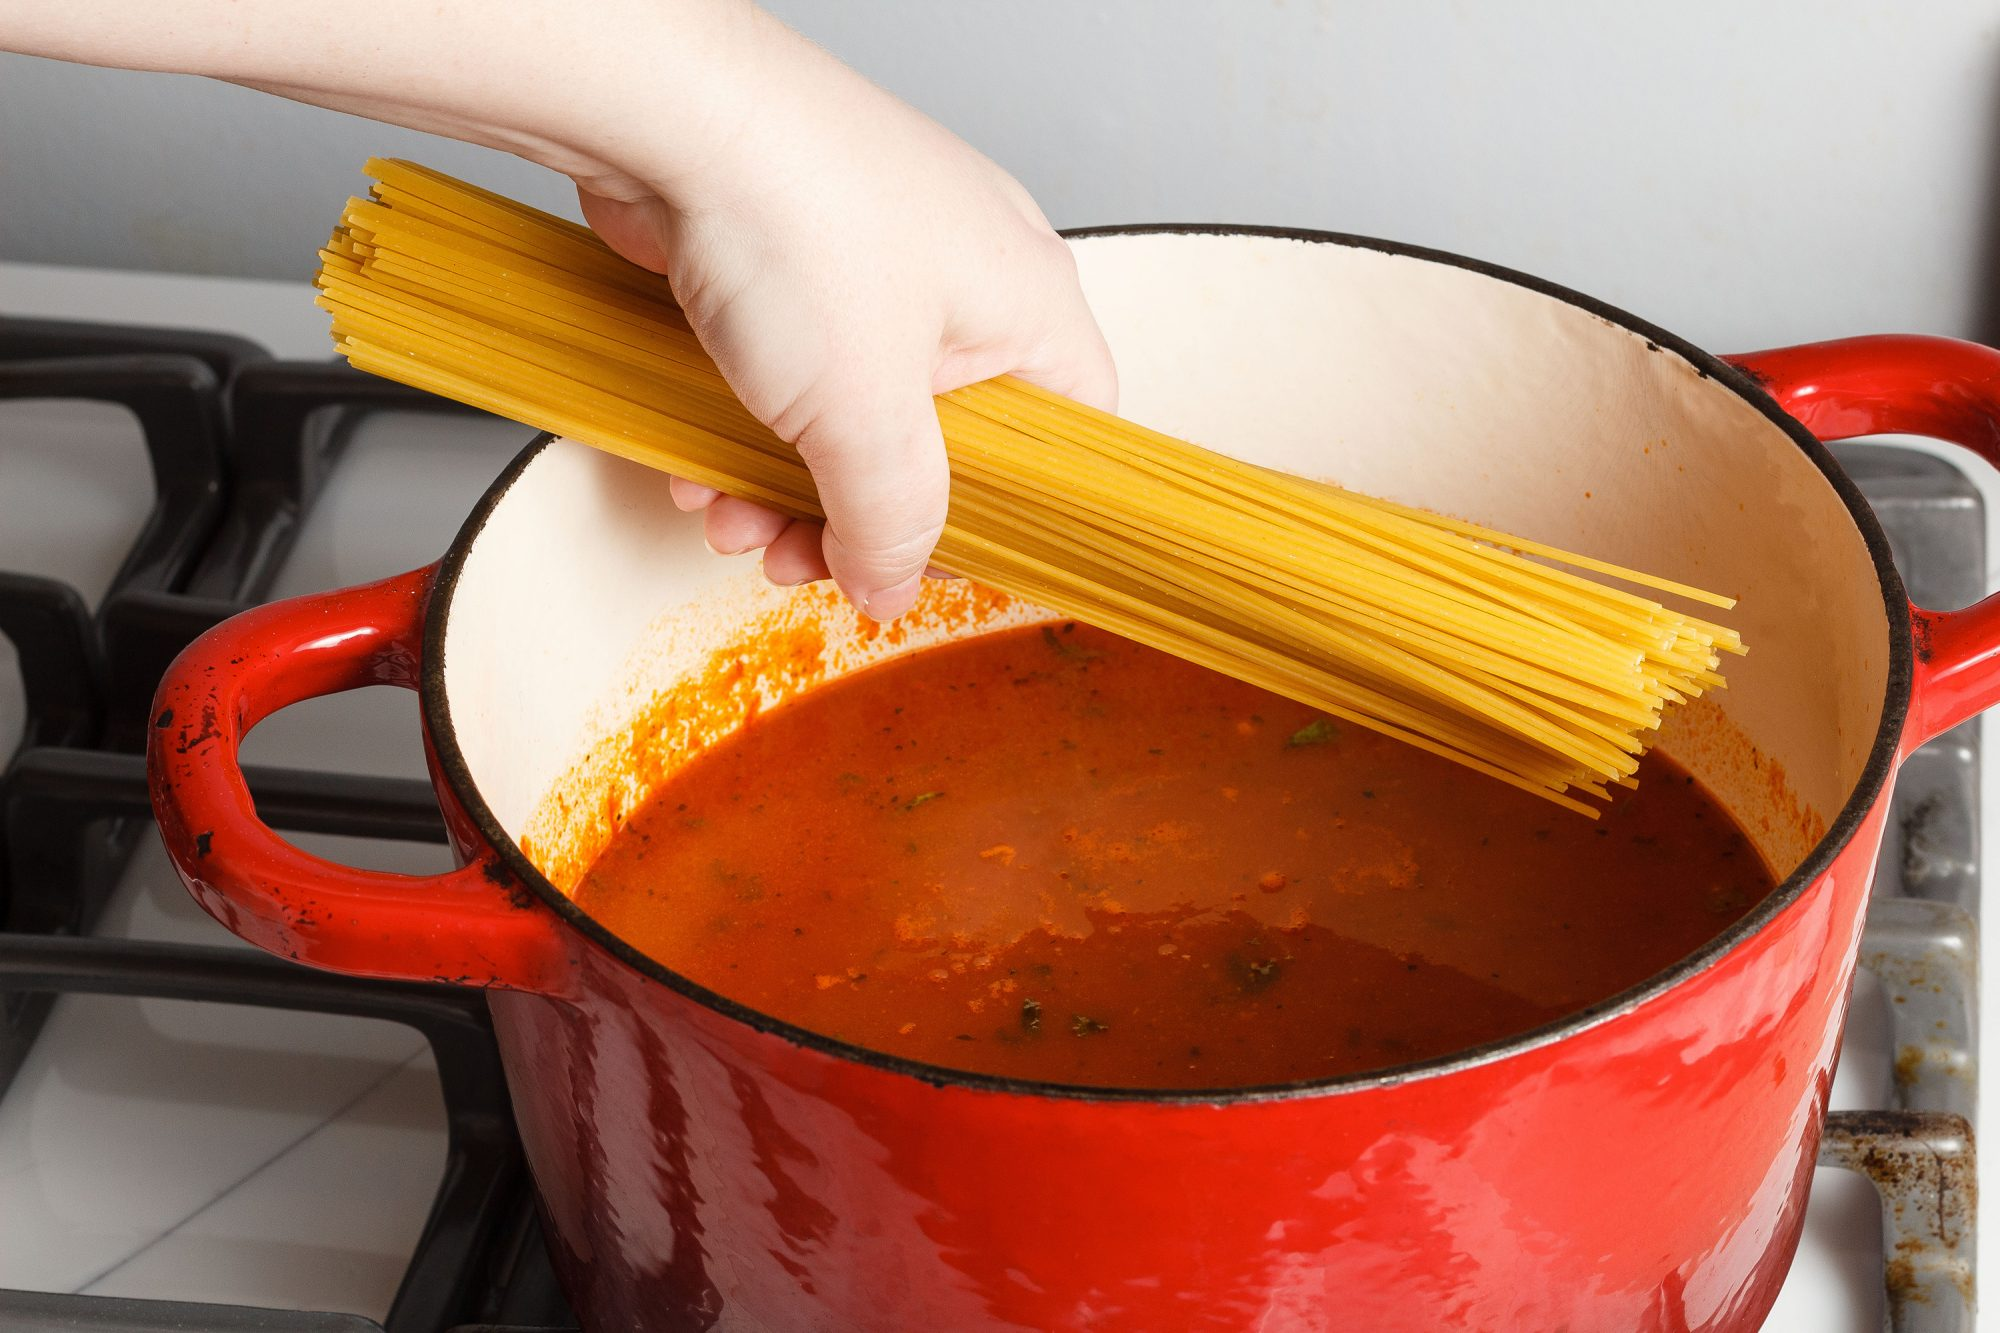 a white woman's hand holds a pound of spaghetti above a Dutch oven half full with spaghetti sauce